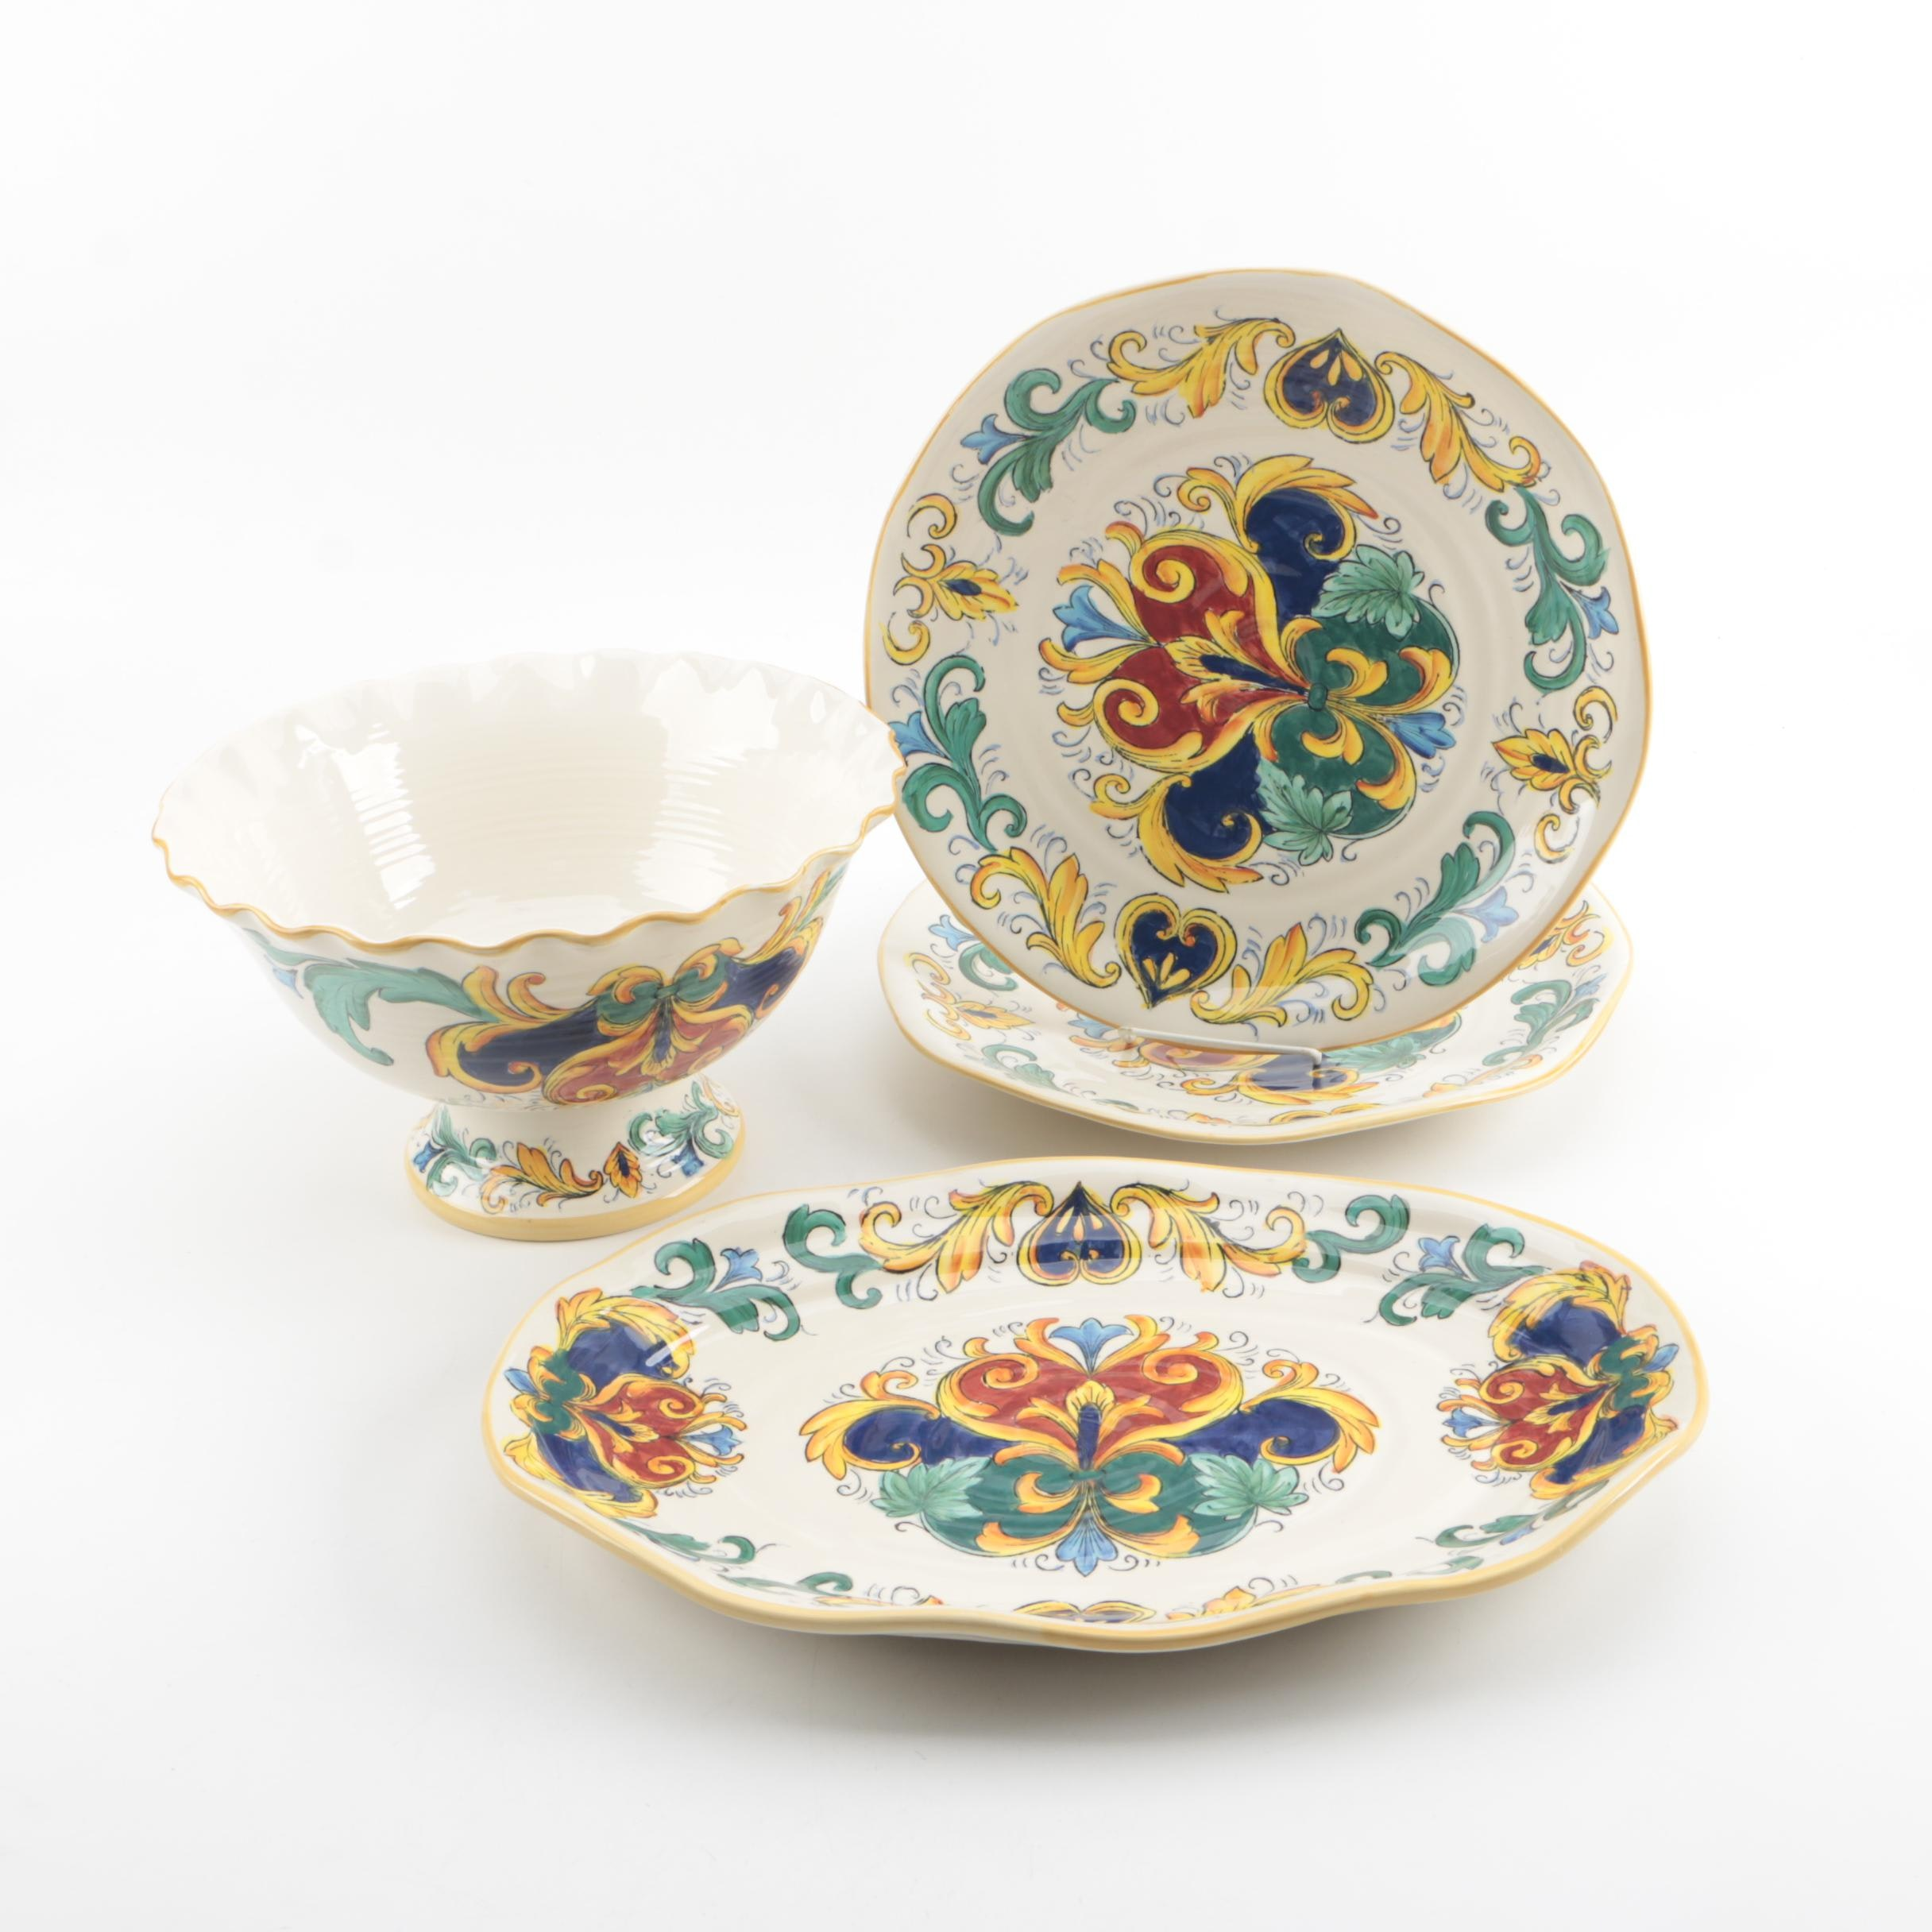 Royal Tuscan Serveware with Maiolica Style Decoration